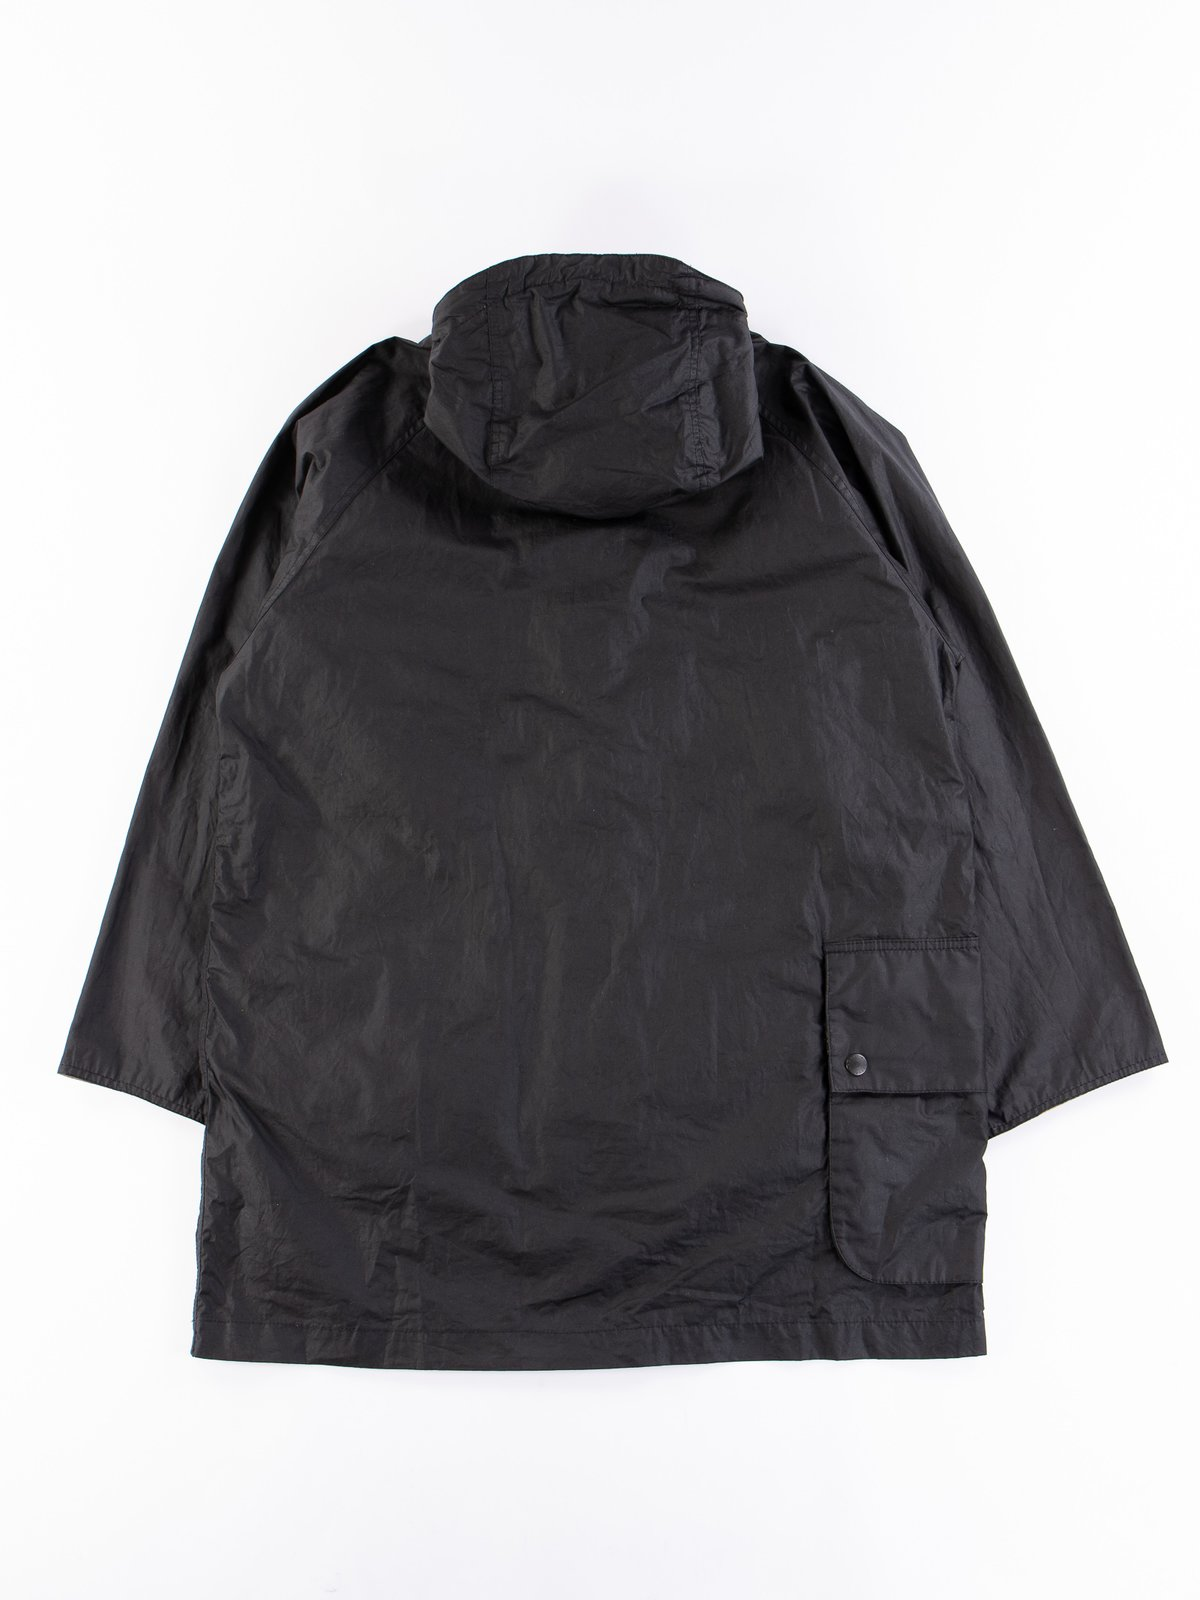 Black Hiking Waxed Cotton Jacket - Image 7